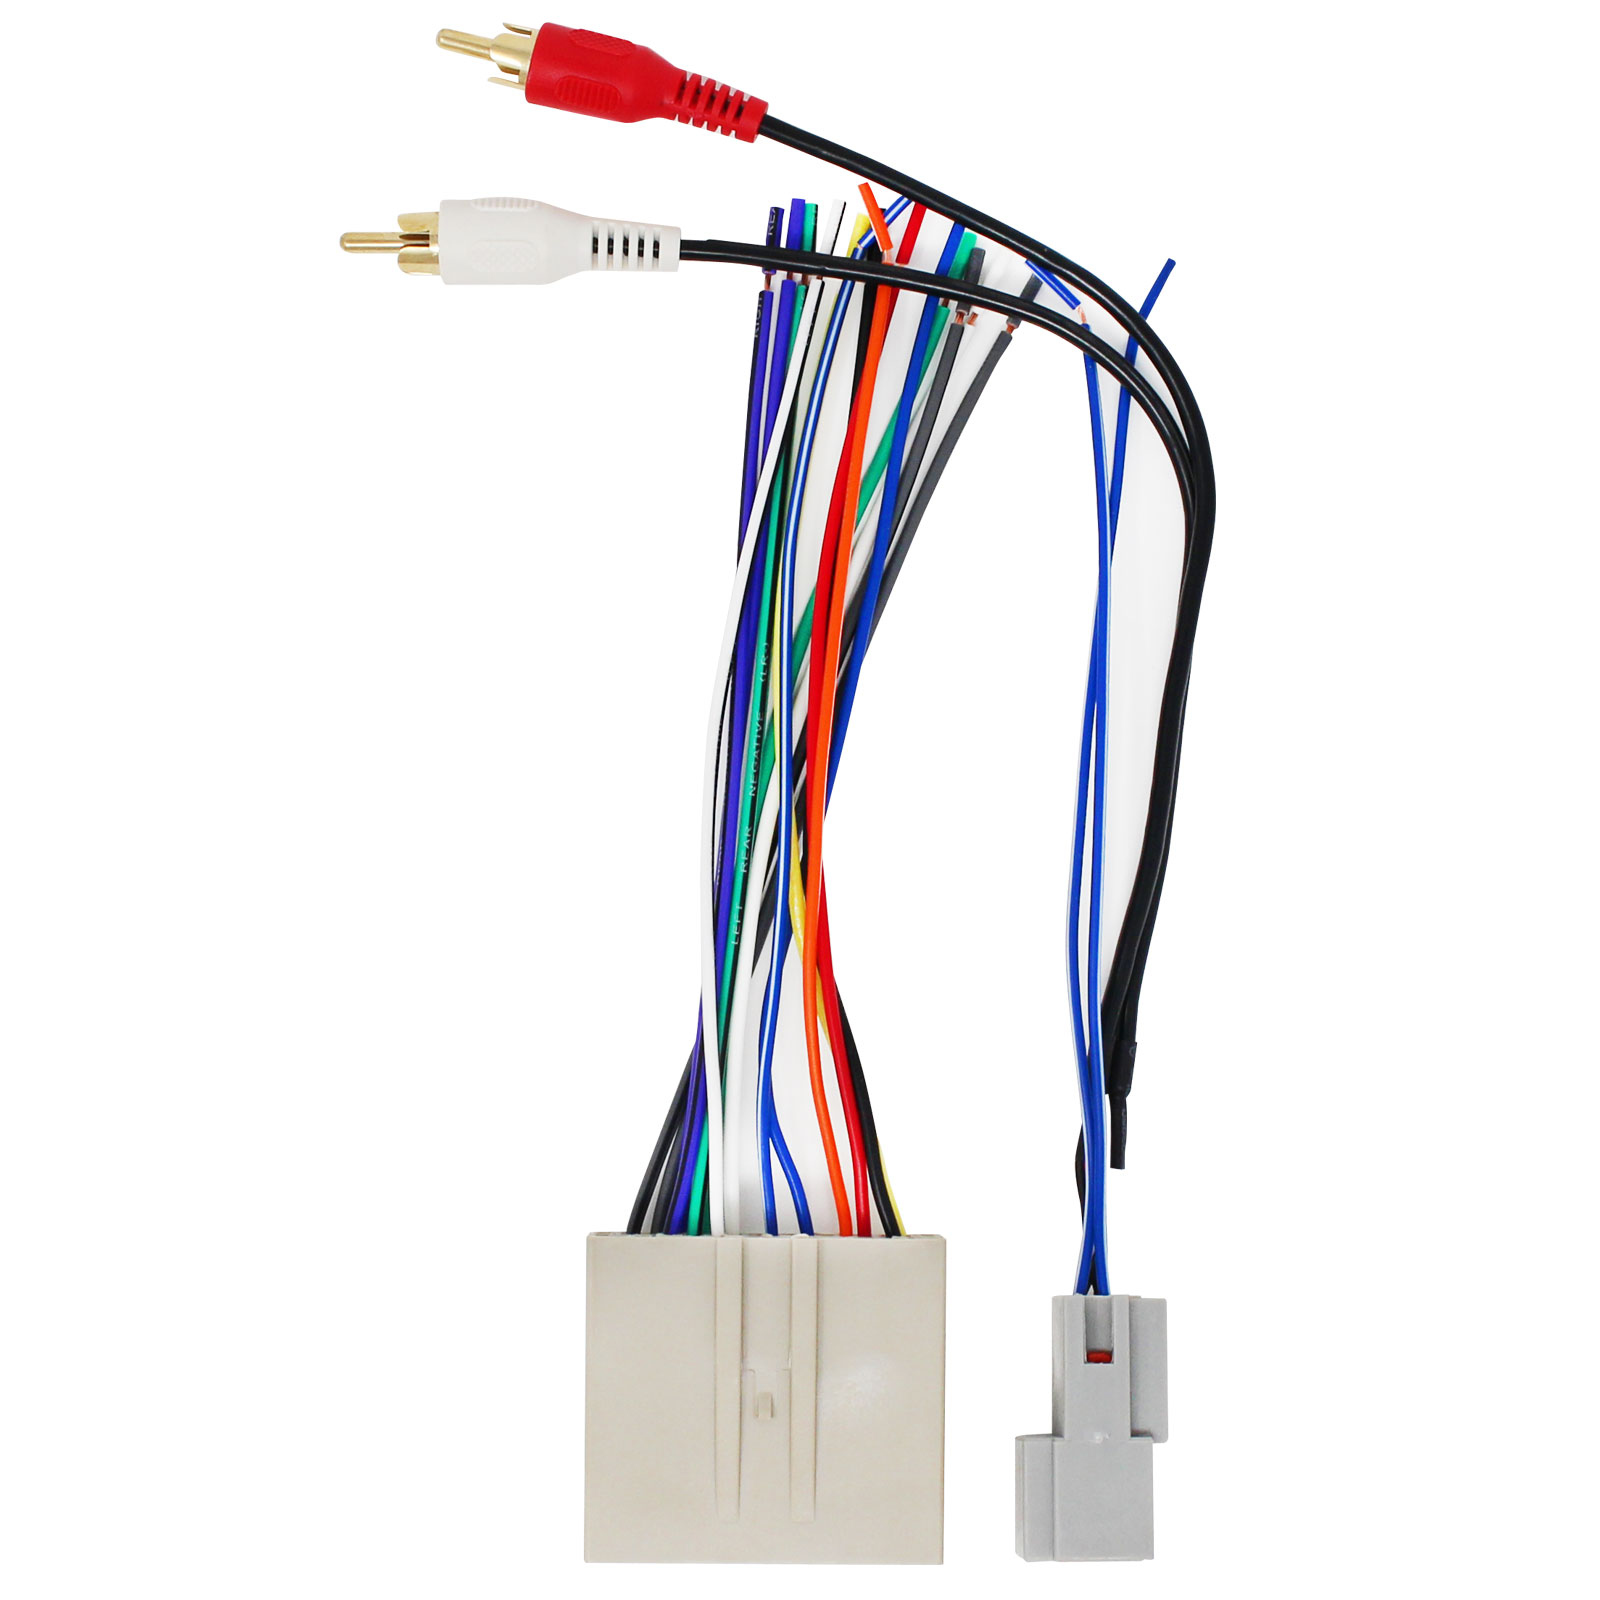 replacement radio wiring harness for 2005 ford five hundred limited sedan  4-door 3.0l - car stereo connector - walmart.com - walmart.com  walmart